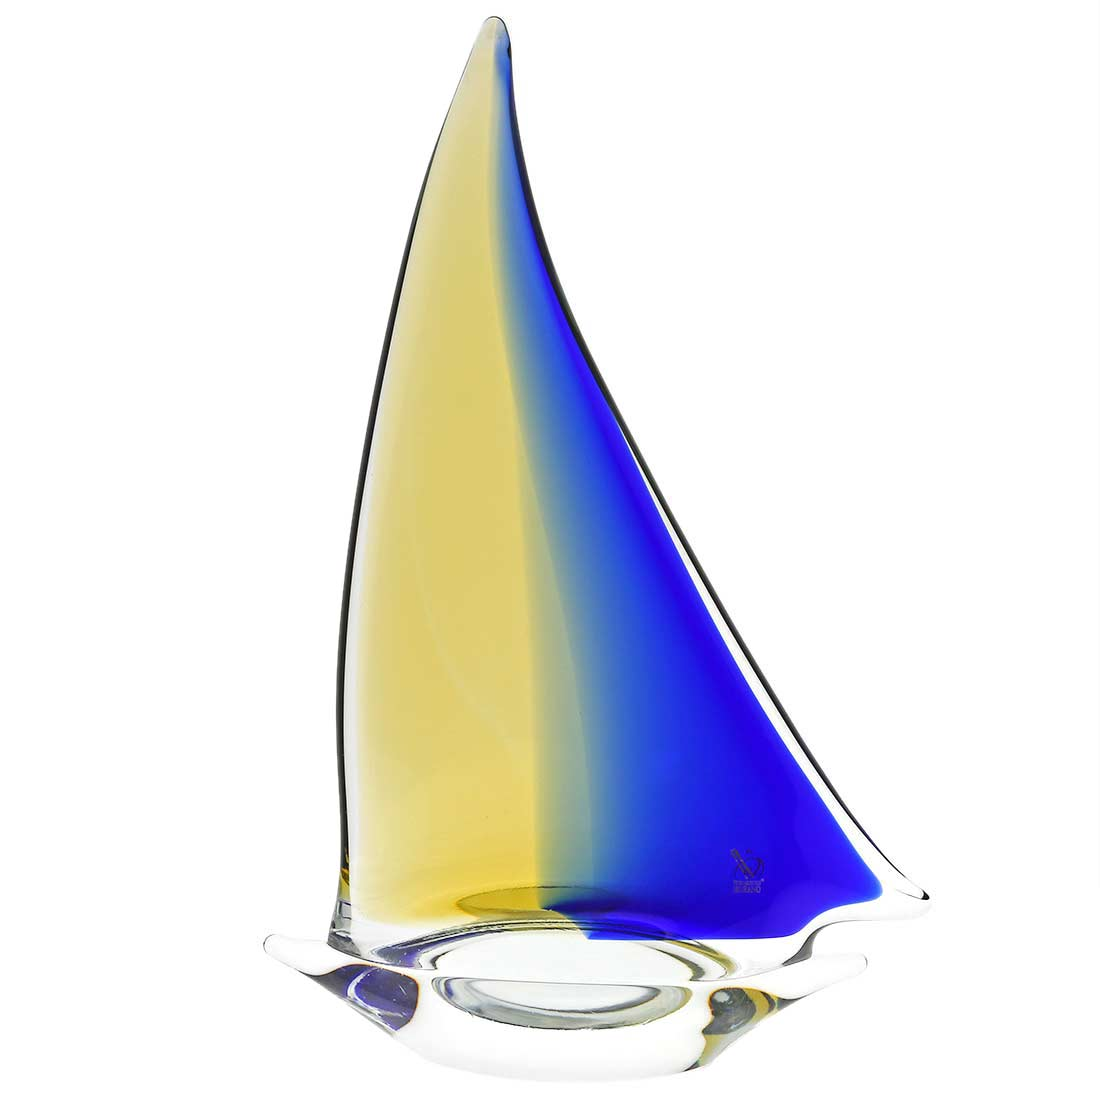 Murano Glass Large Sailboat - Amber Blue